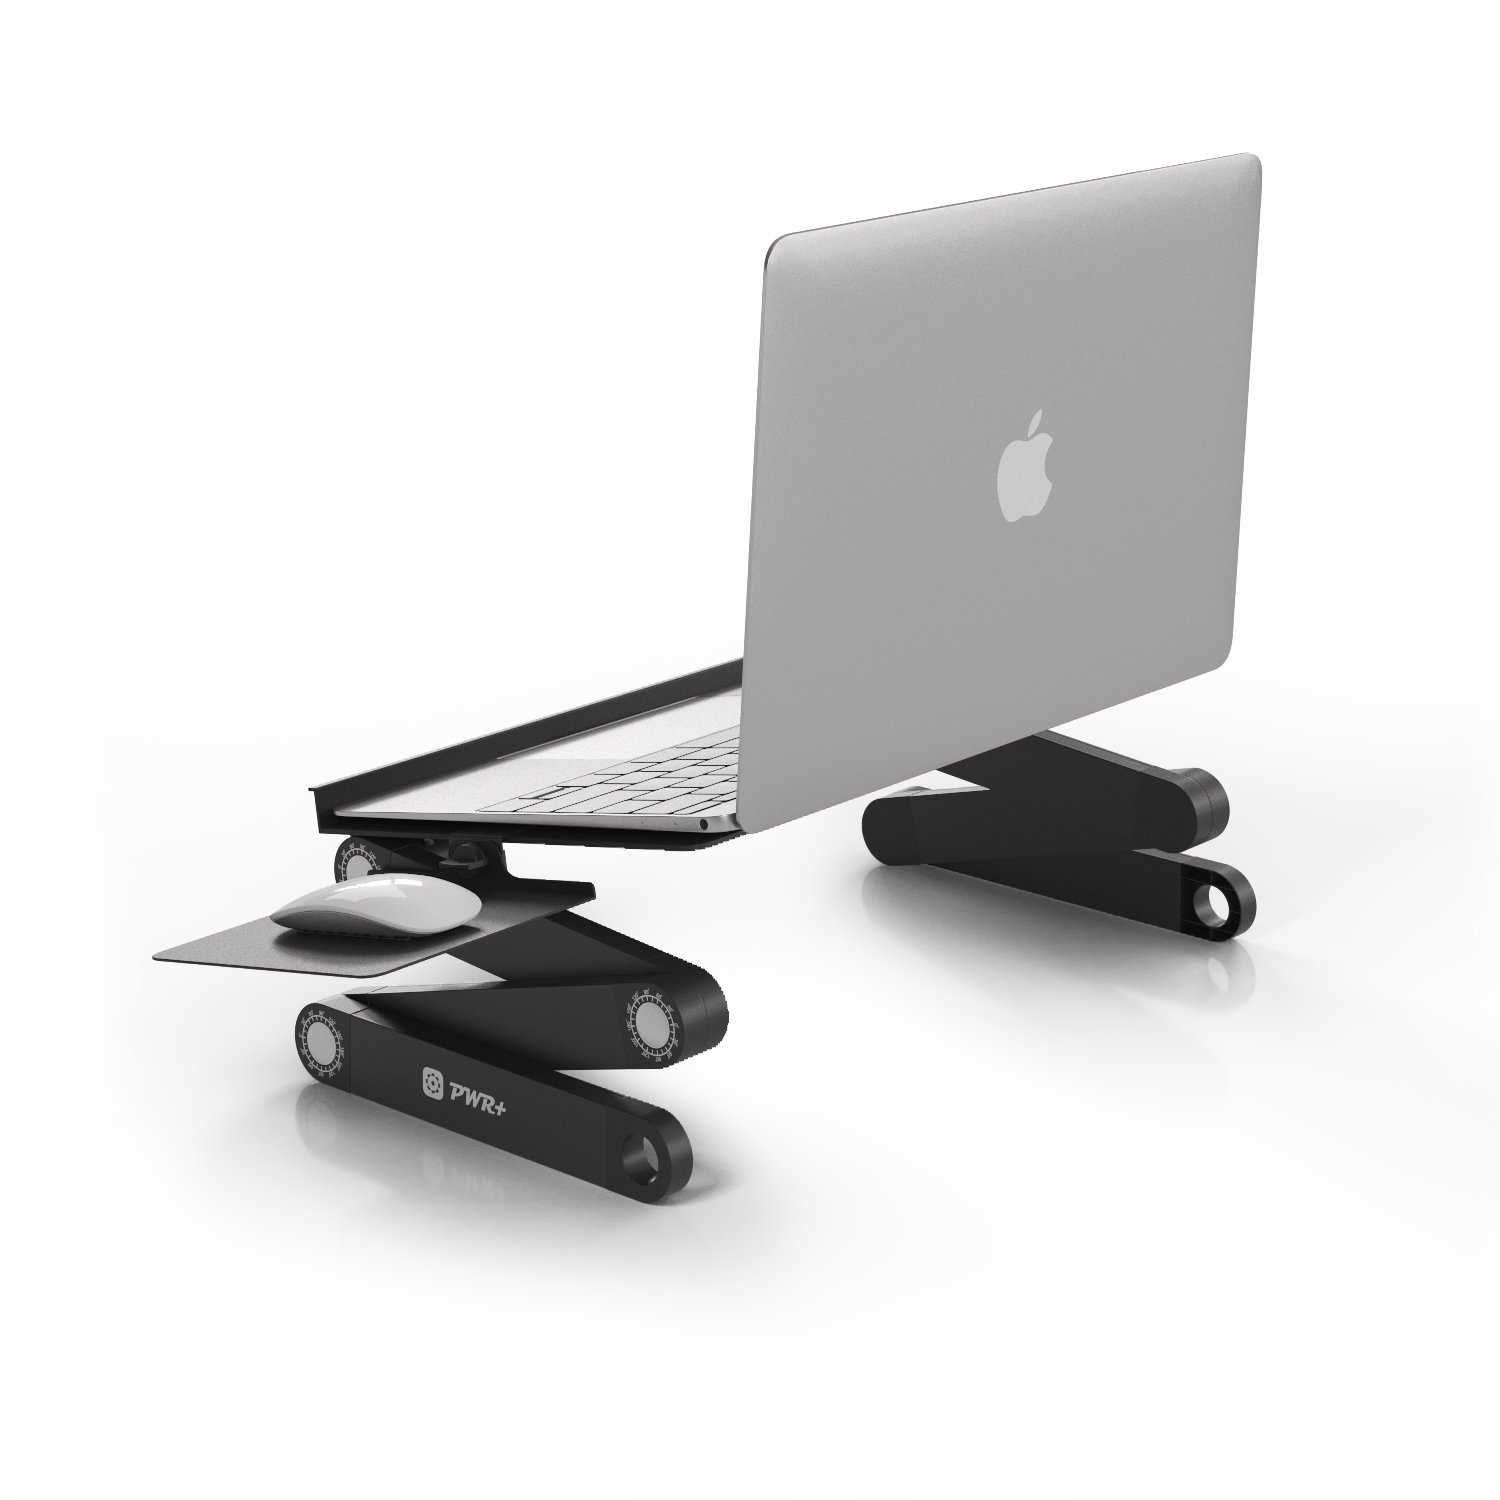 Pwr Laptop Table Stand Adjustable Riser: USA Seller 2Y Warranty Portable with Mouse Pad Fully Ergonomic Mount Ultrabook MacBook Notebook Light Weight Aluminum Black Bed Tray Desk Book Fans Up to 17""